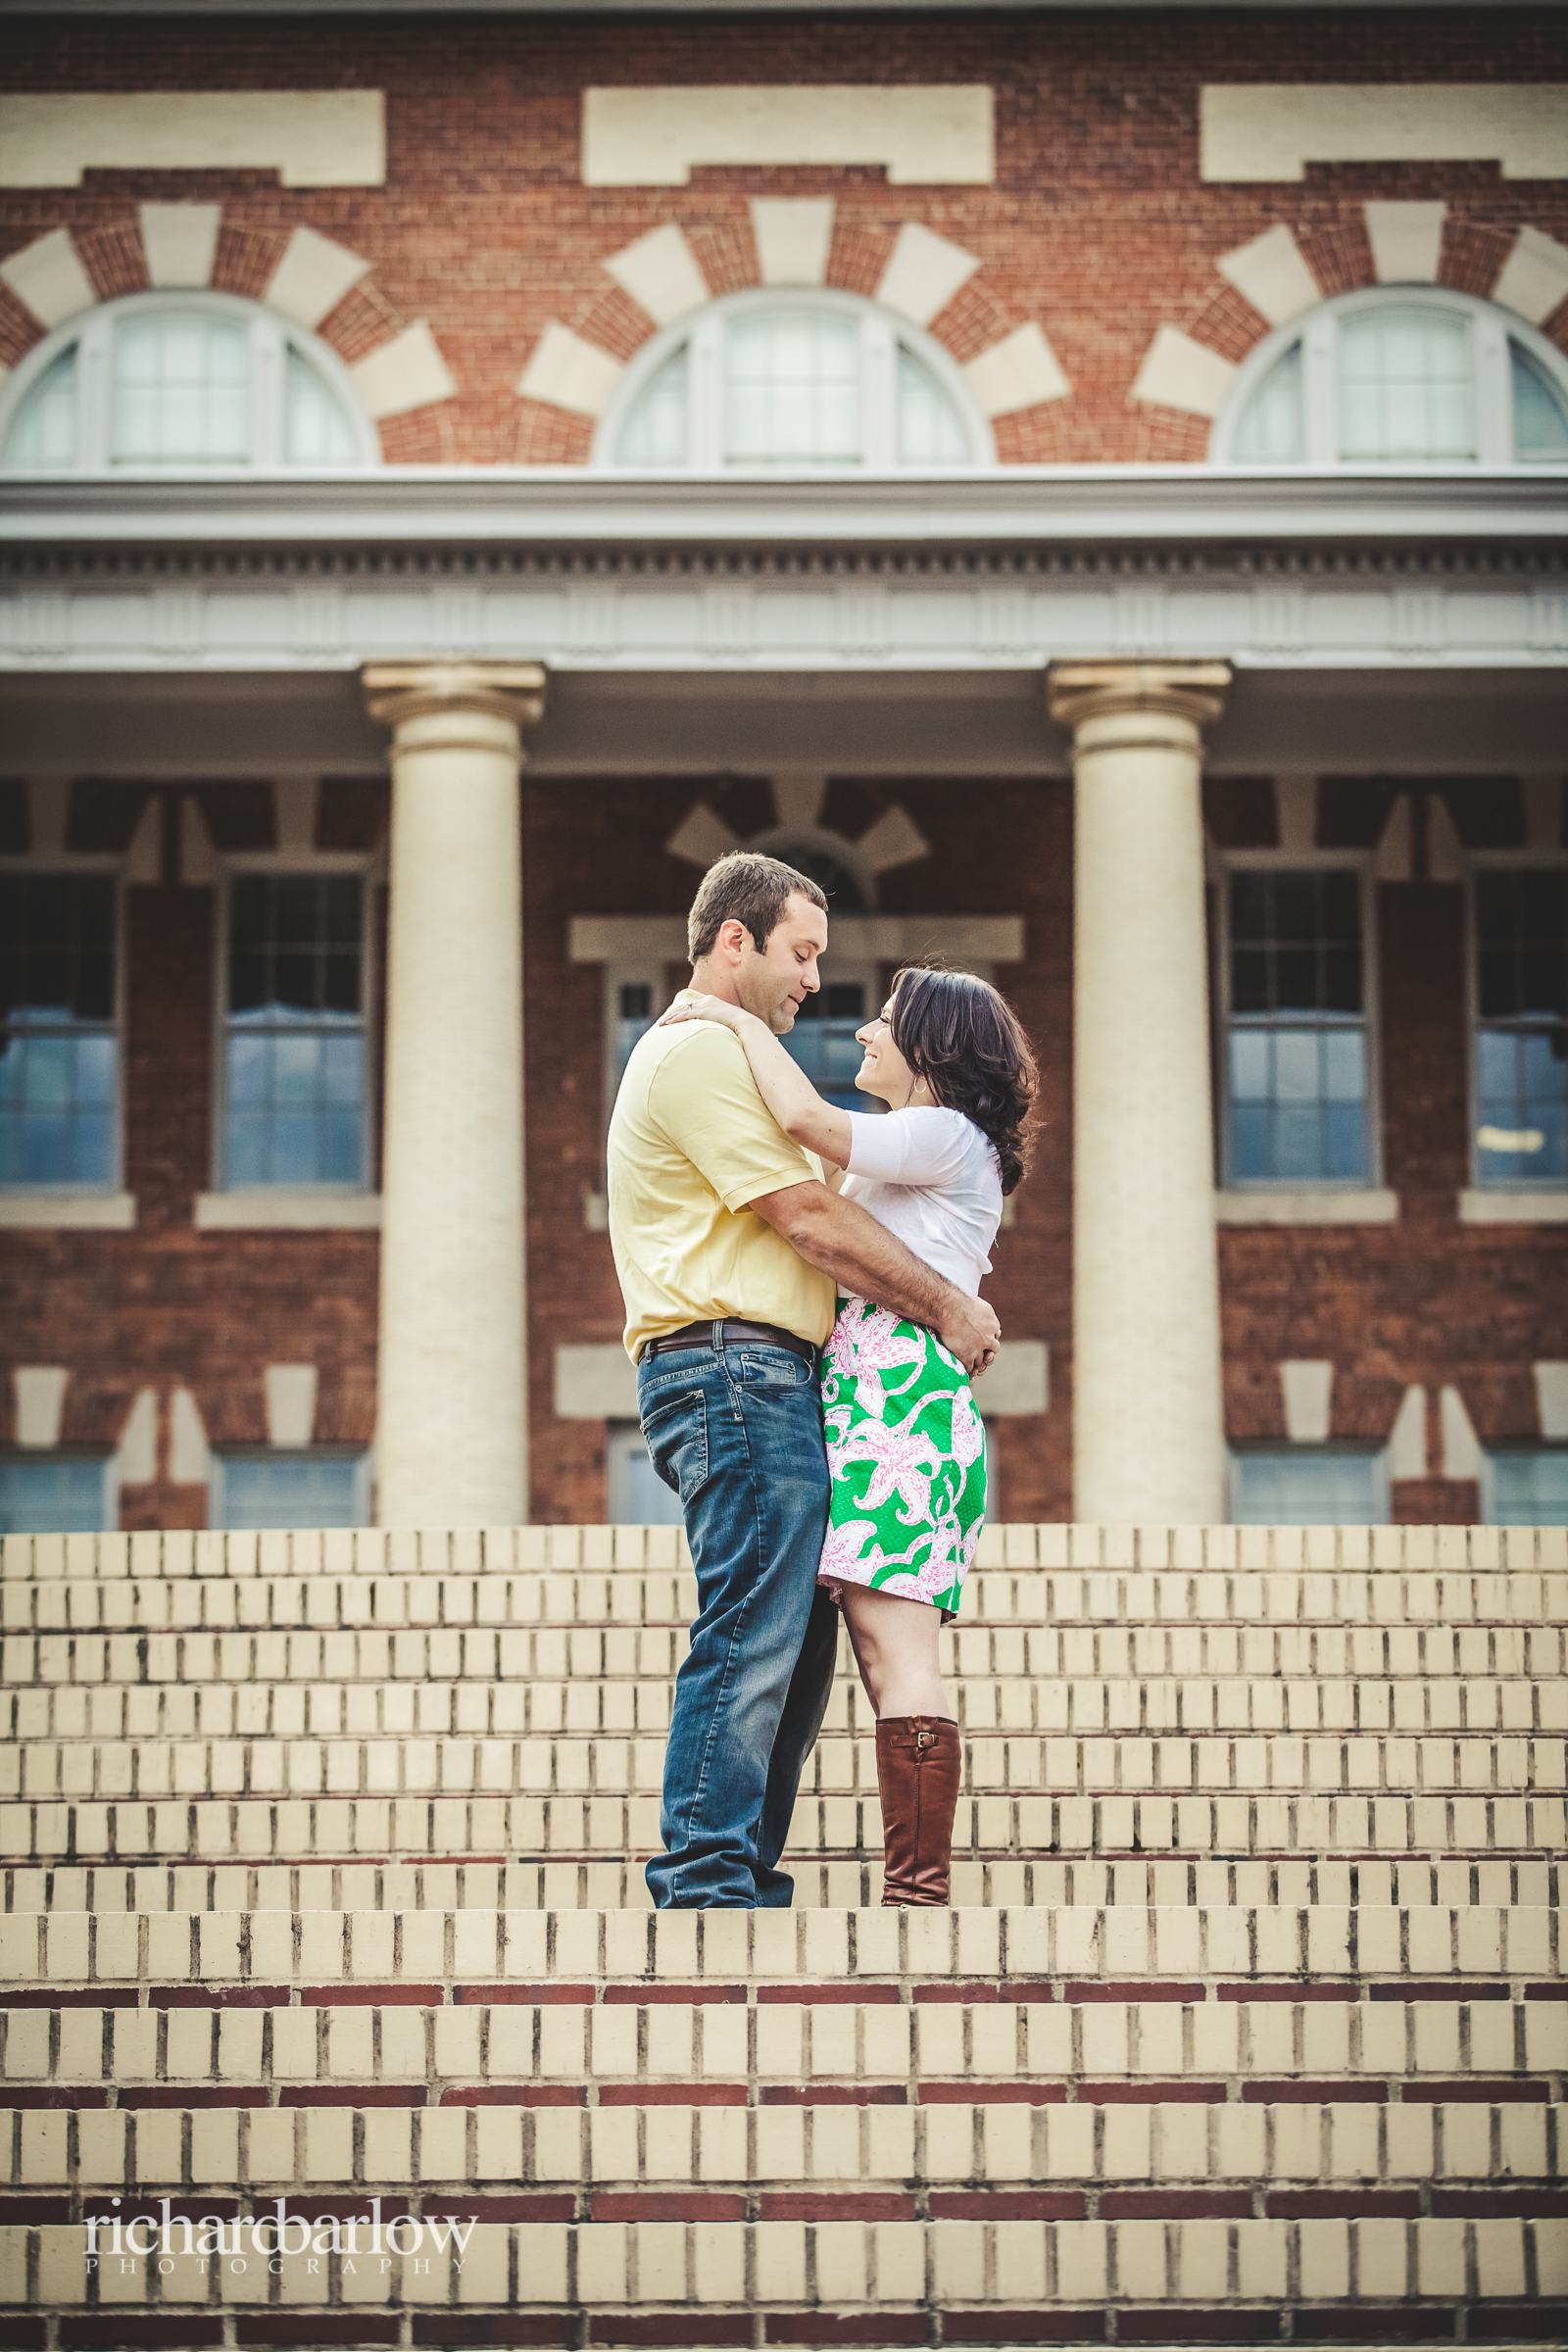 richard barlow photography - Jason and Karen Engagement Session NC State-6.jpg